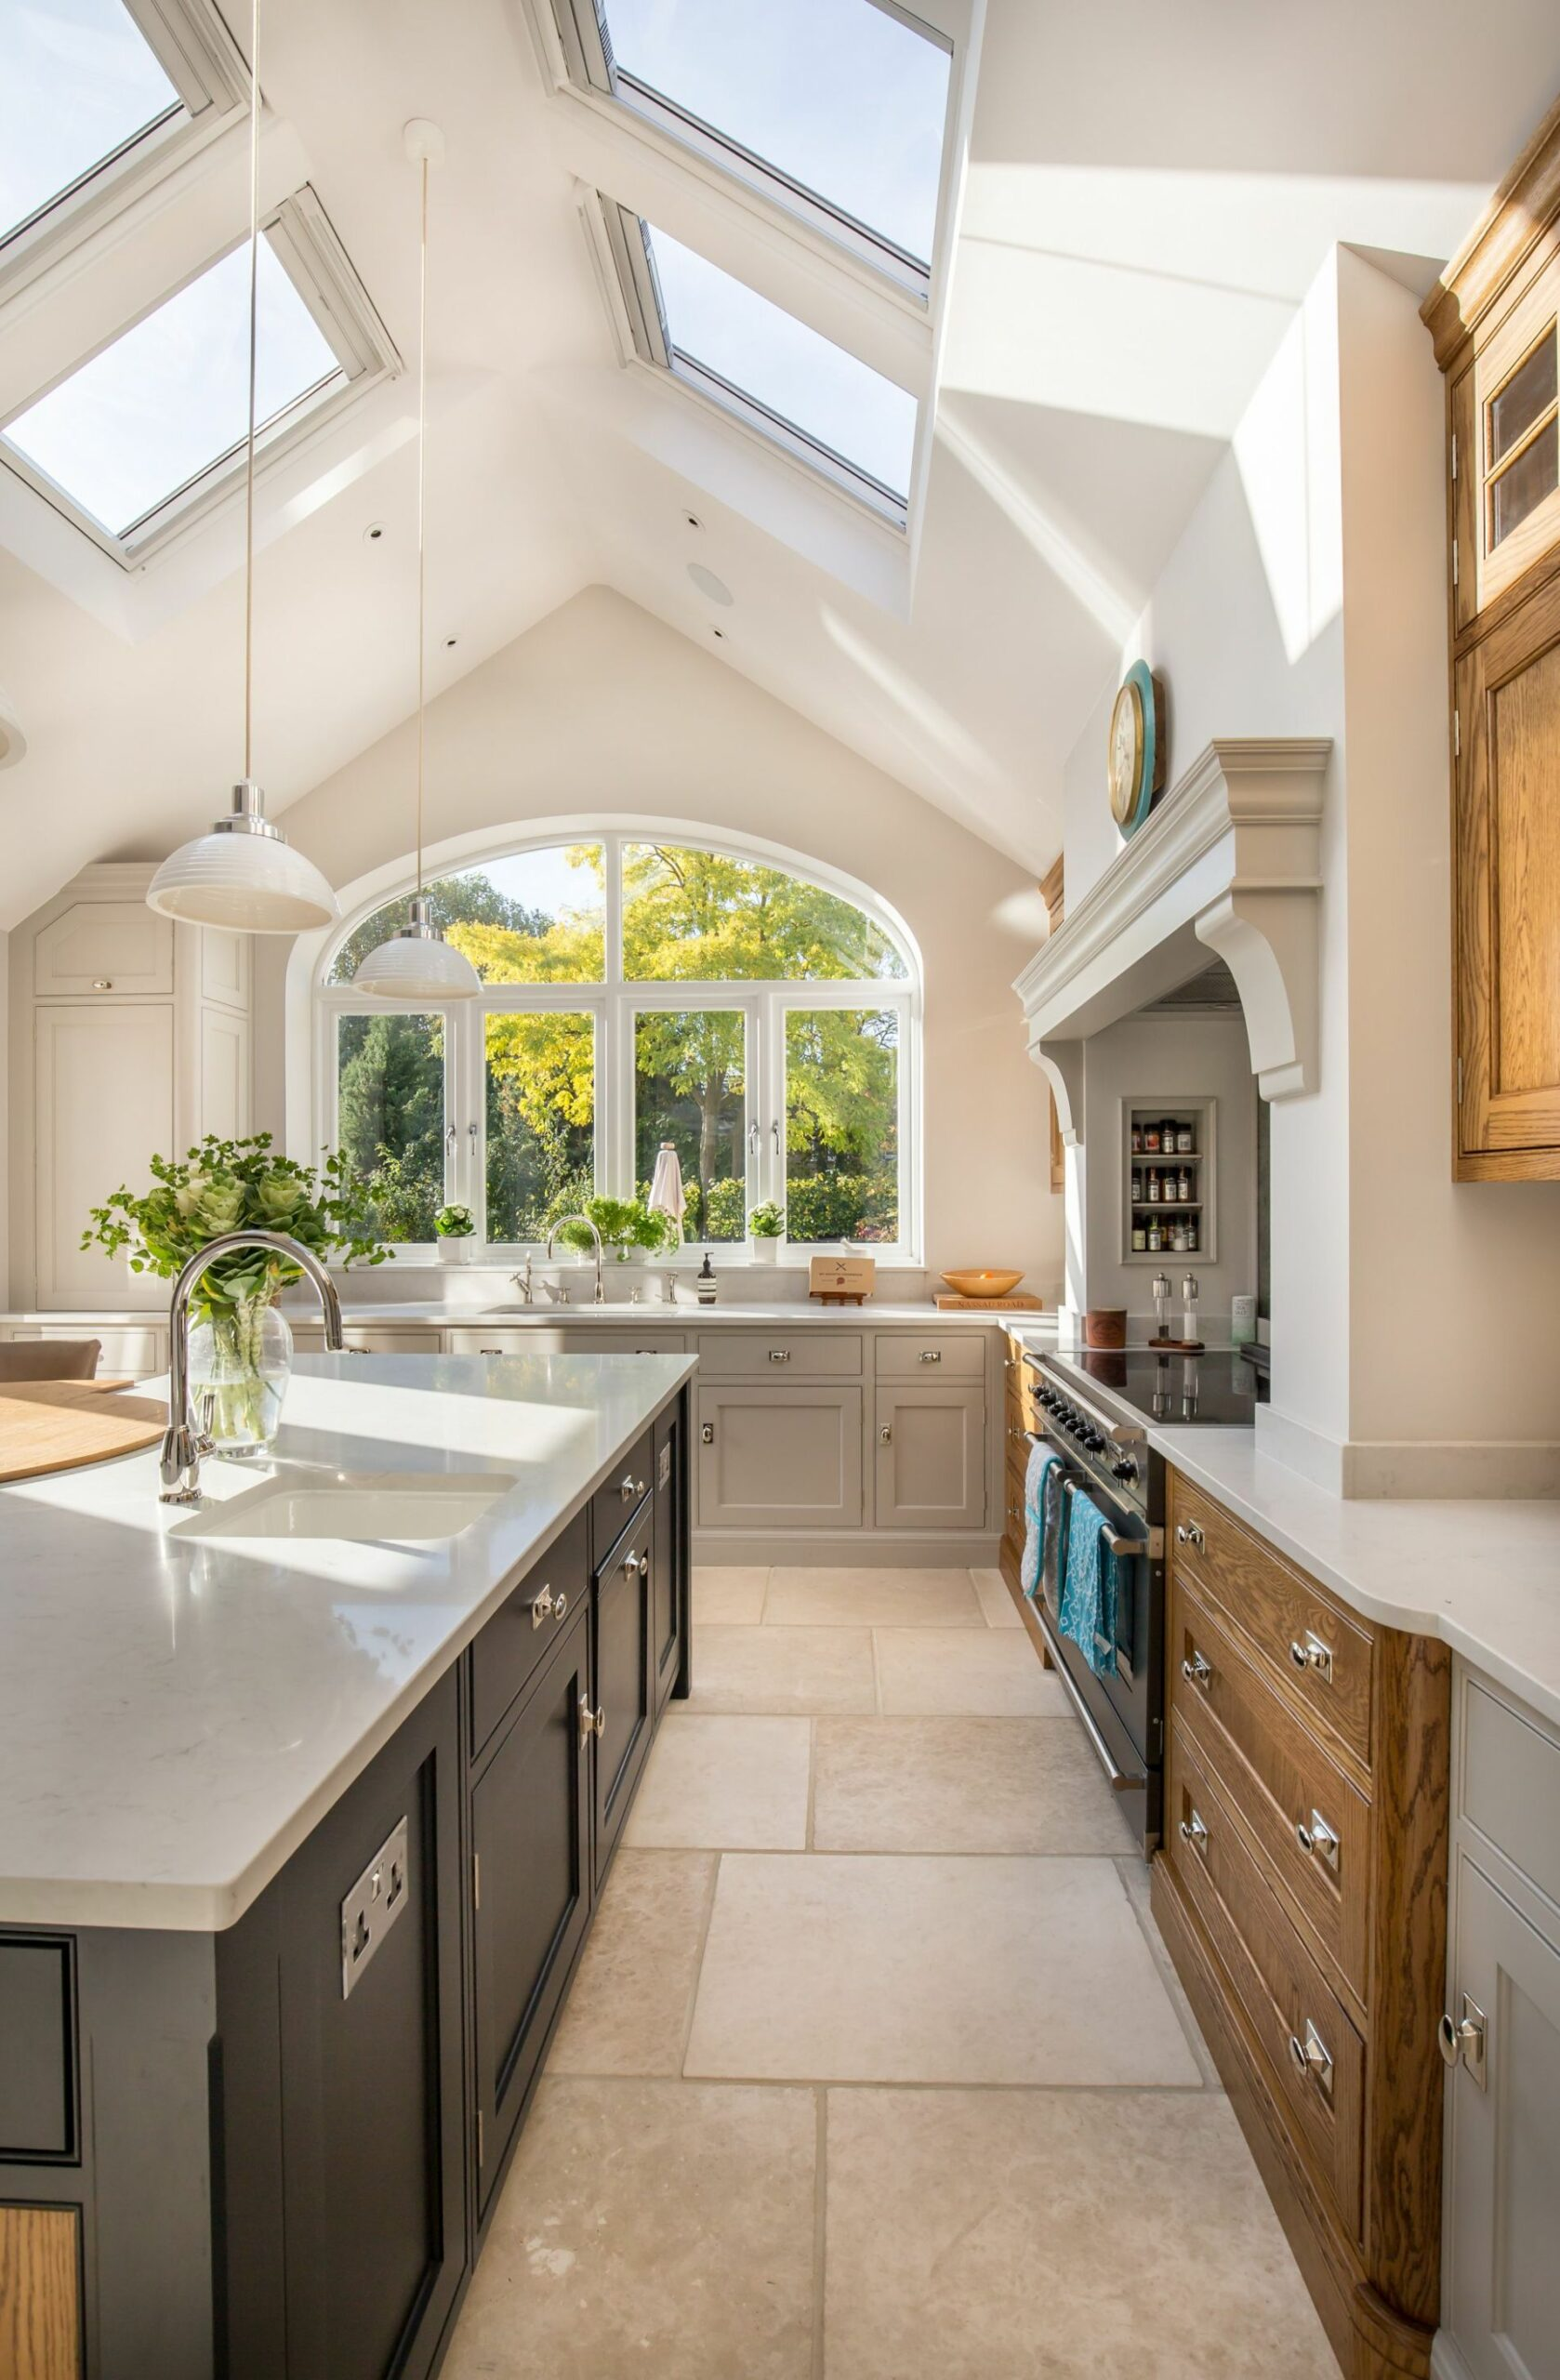 Kitchen extension project with natural light flooding the space ..